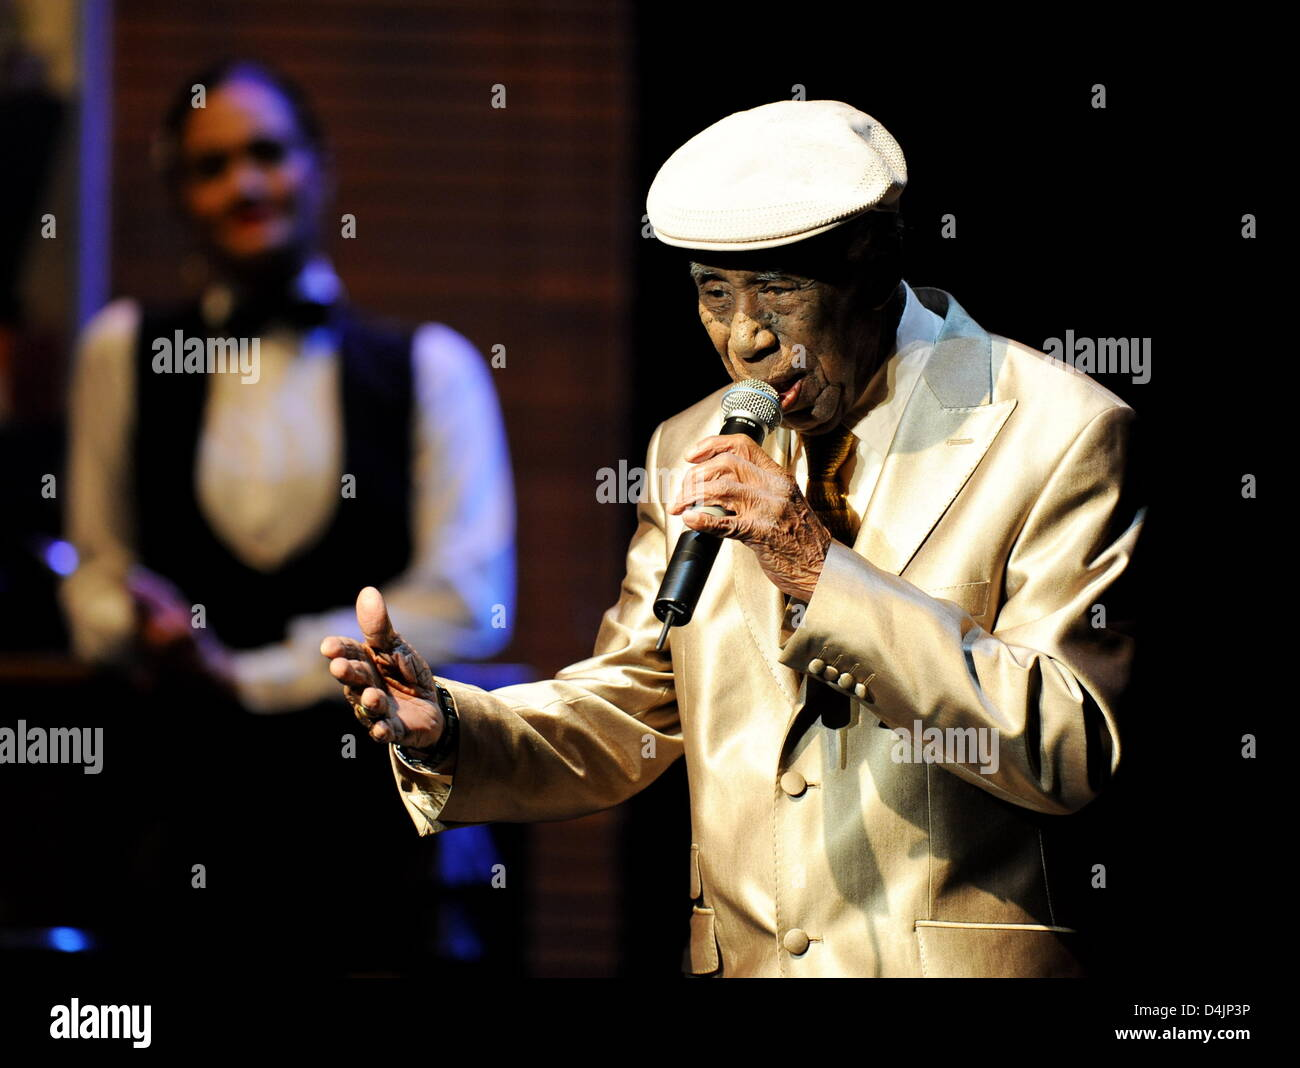 Singer Reynaldo Creagh performs at the music show ?The Bar at Buena Vista? at Prinzregententheater in Munich, Germany, - Stock Image